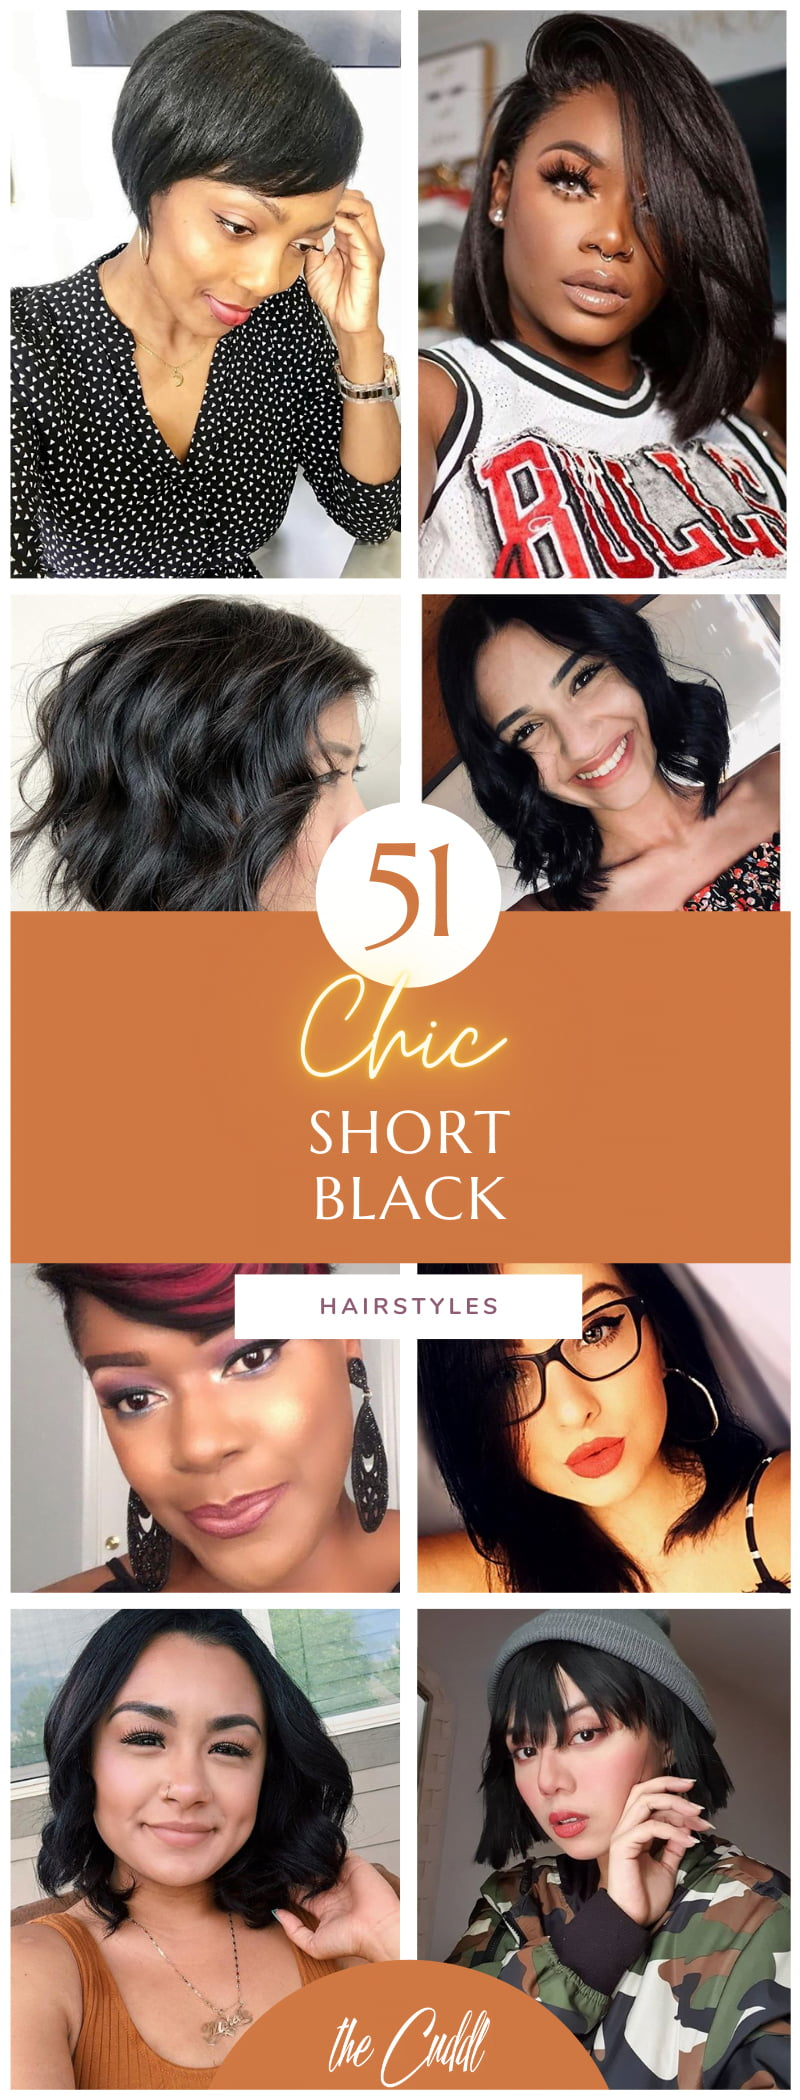 51 Best Short Black Hair Ideas To Inspire You In 2020